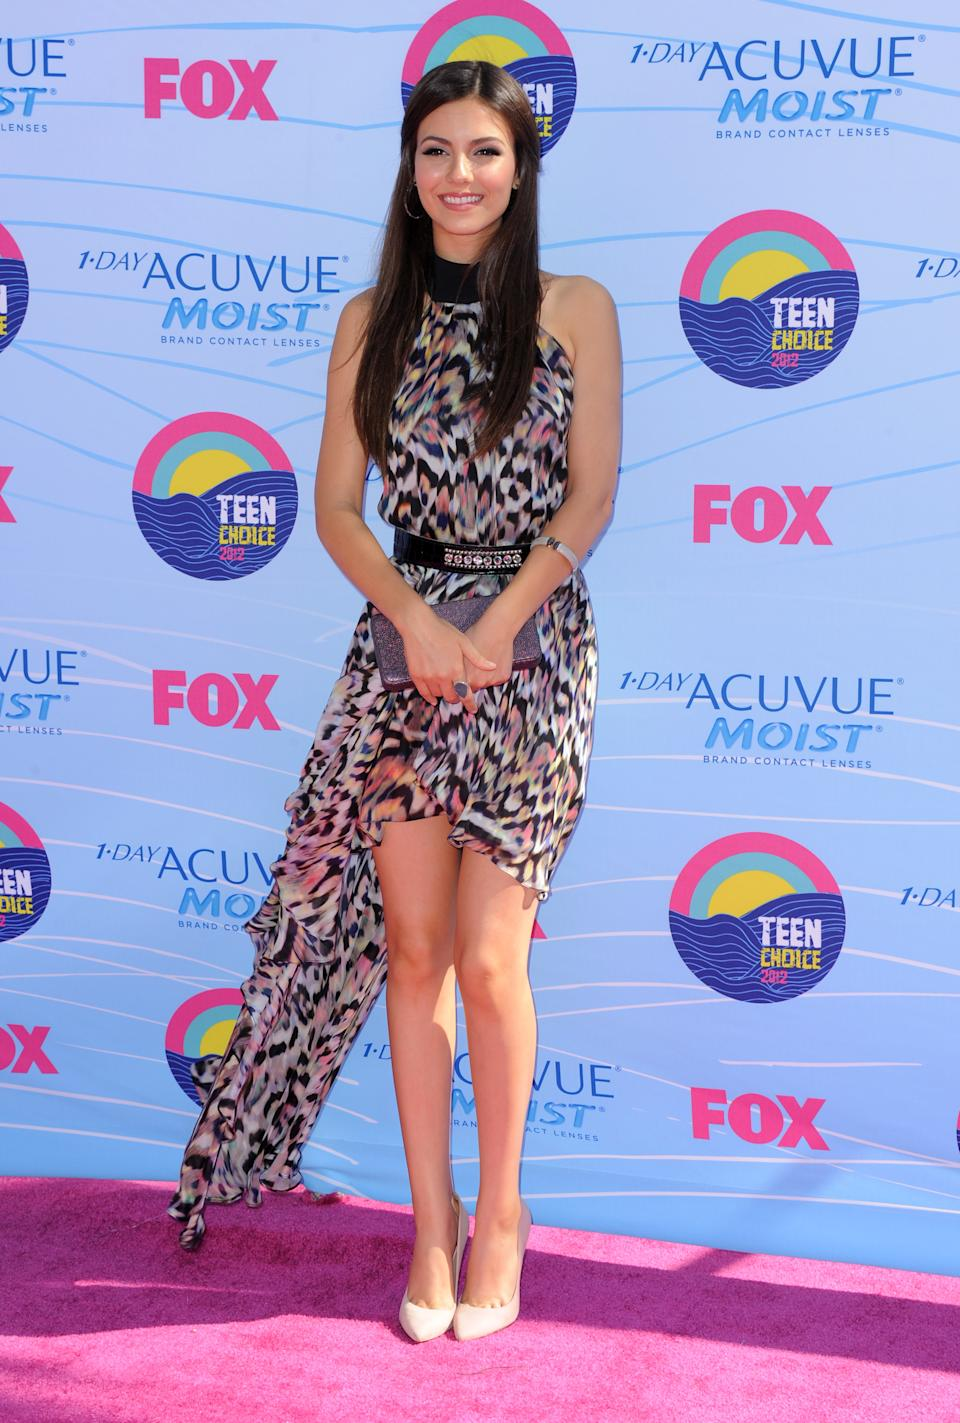 Victoria Justice arrives at the Teen Choice Awards on Sunday, July 22, 2012, in Universal City, Calif. (Photo by Jordan Strauss/Invision/AP)